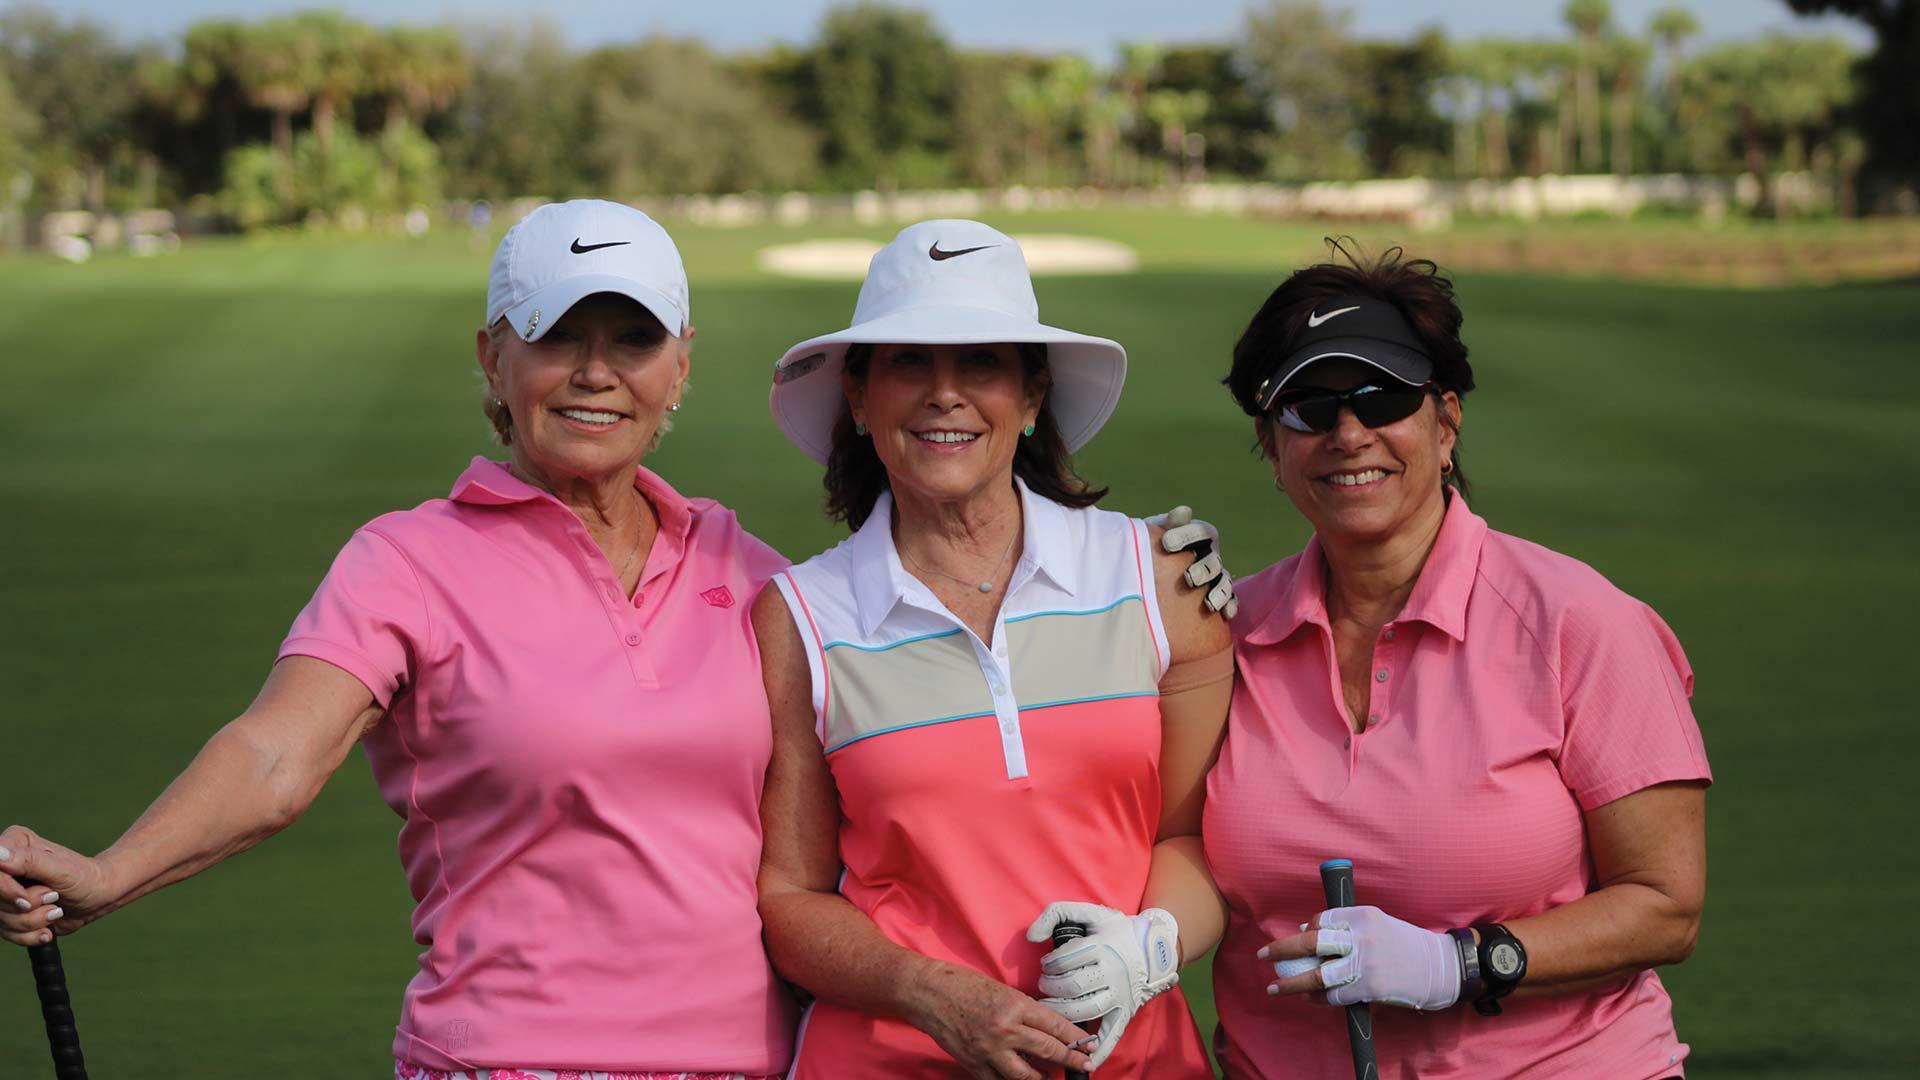 mizner-country-club-delray-beach-golf-images-9